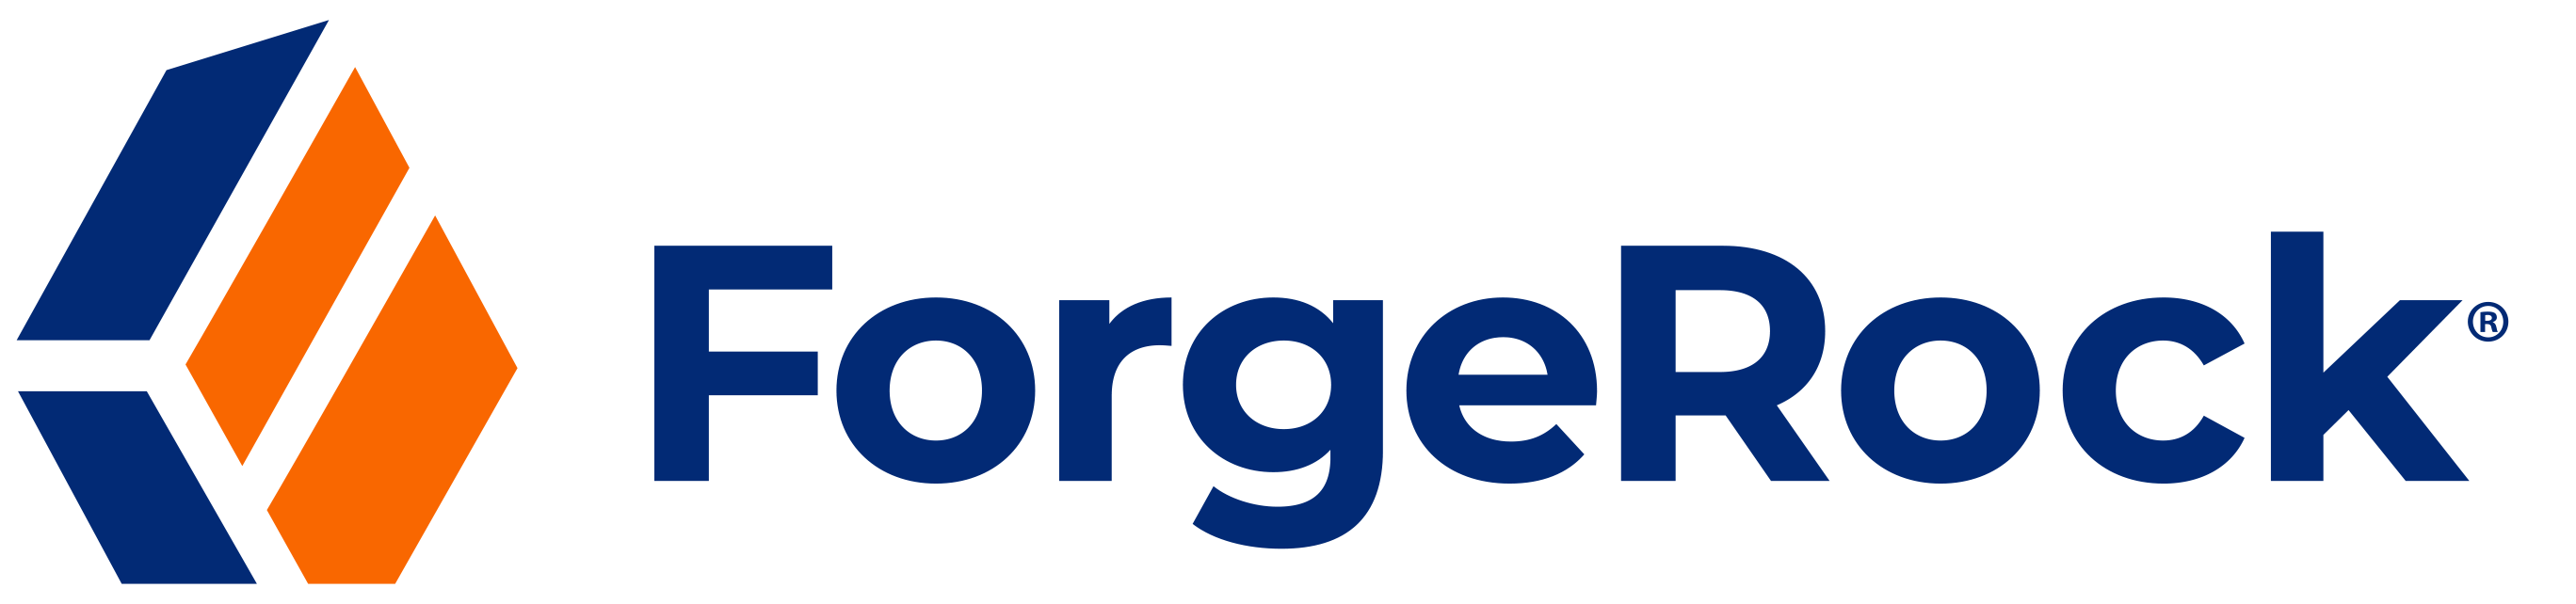 ForgeRocklogo.png